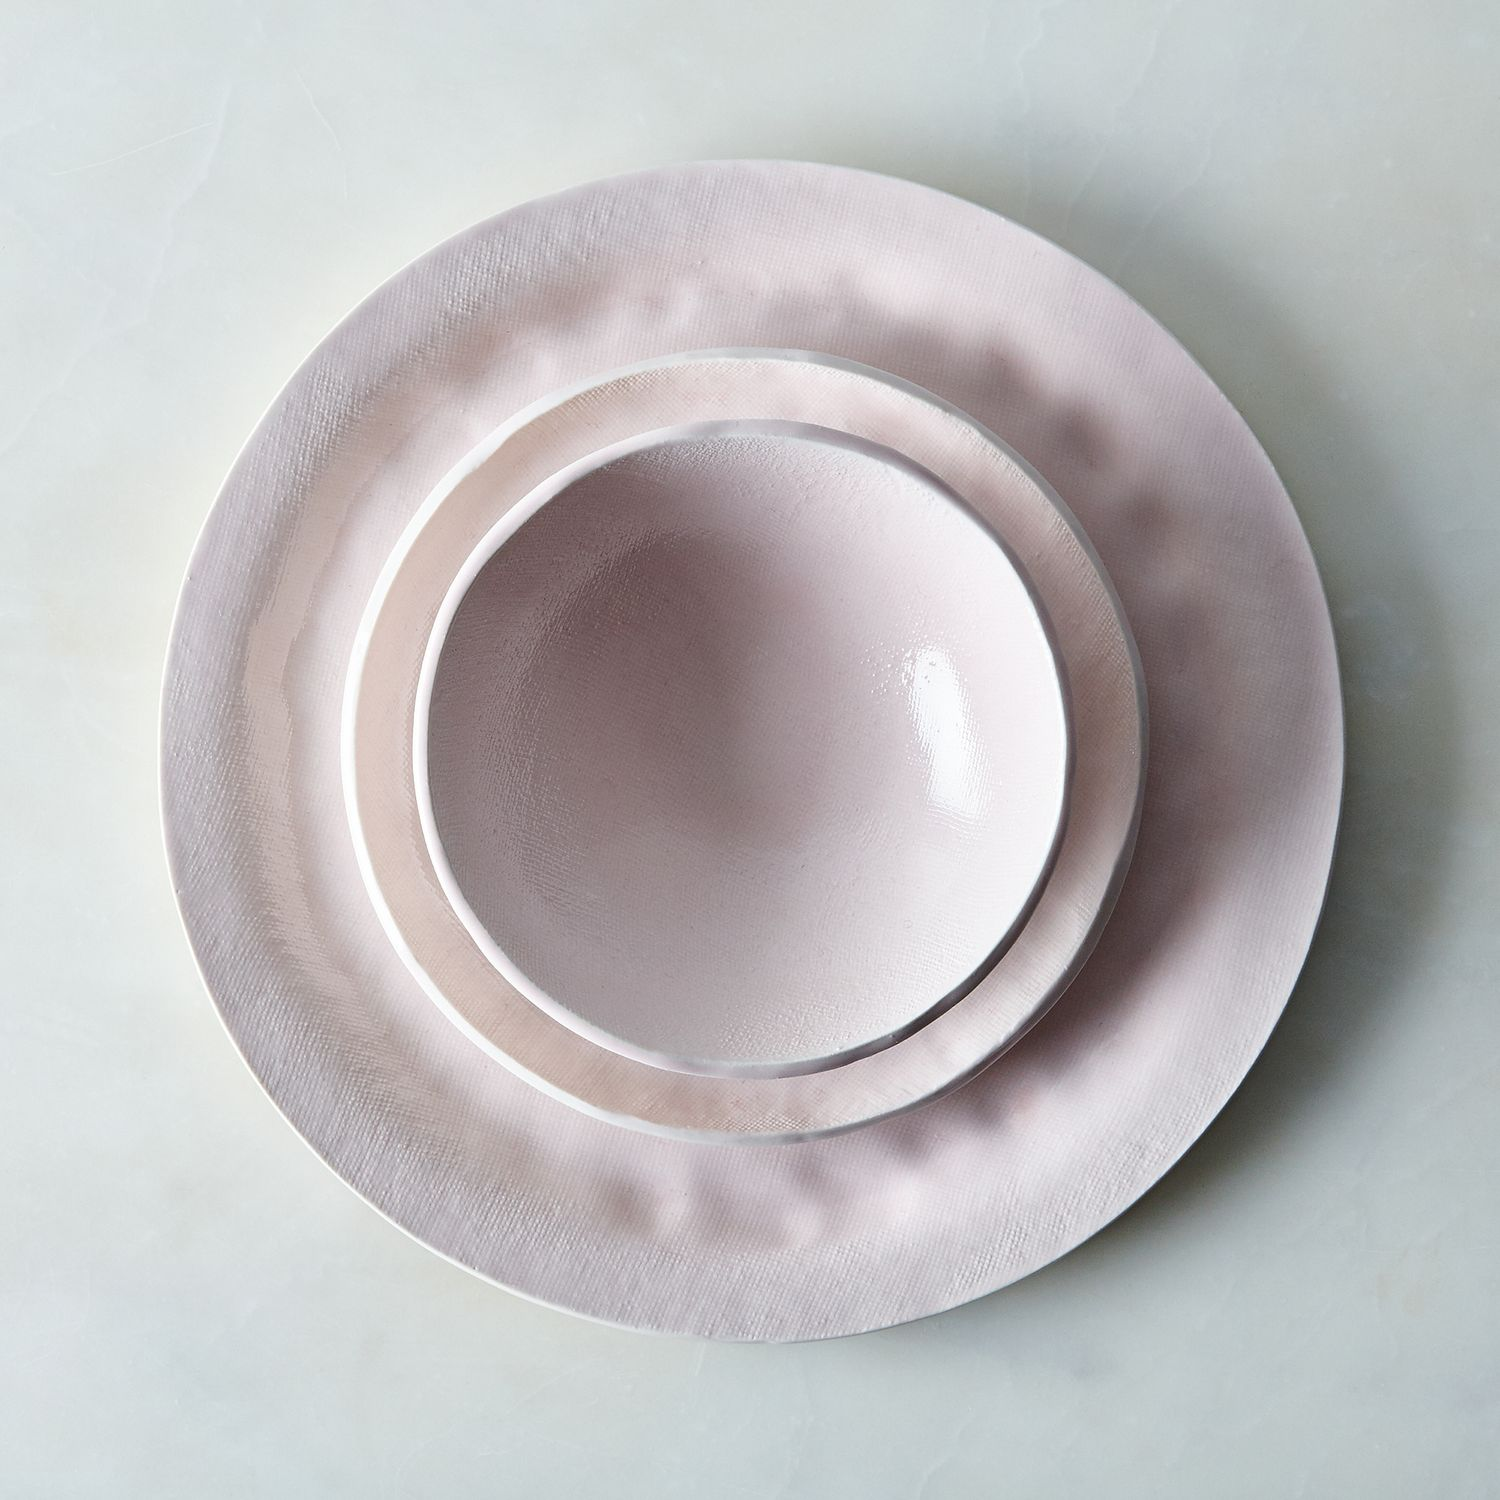 how to set up a kitchen pantry digital timer food52 pink textured porcelain dinnerware set, by looks ...